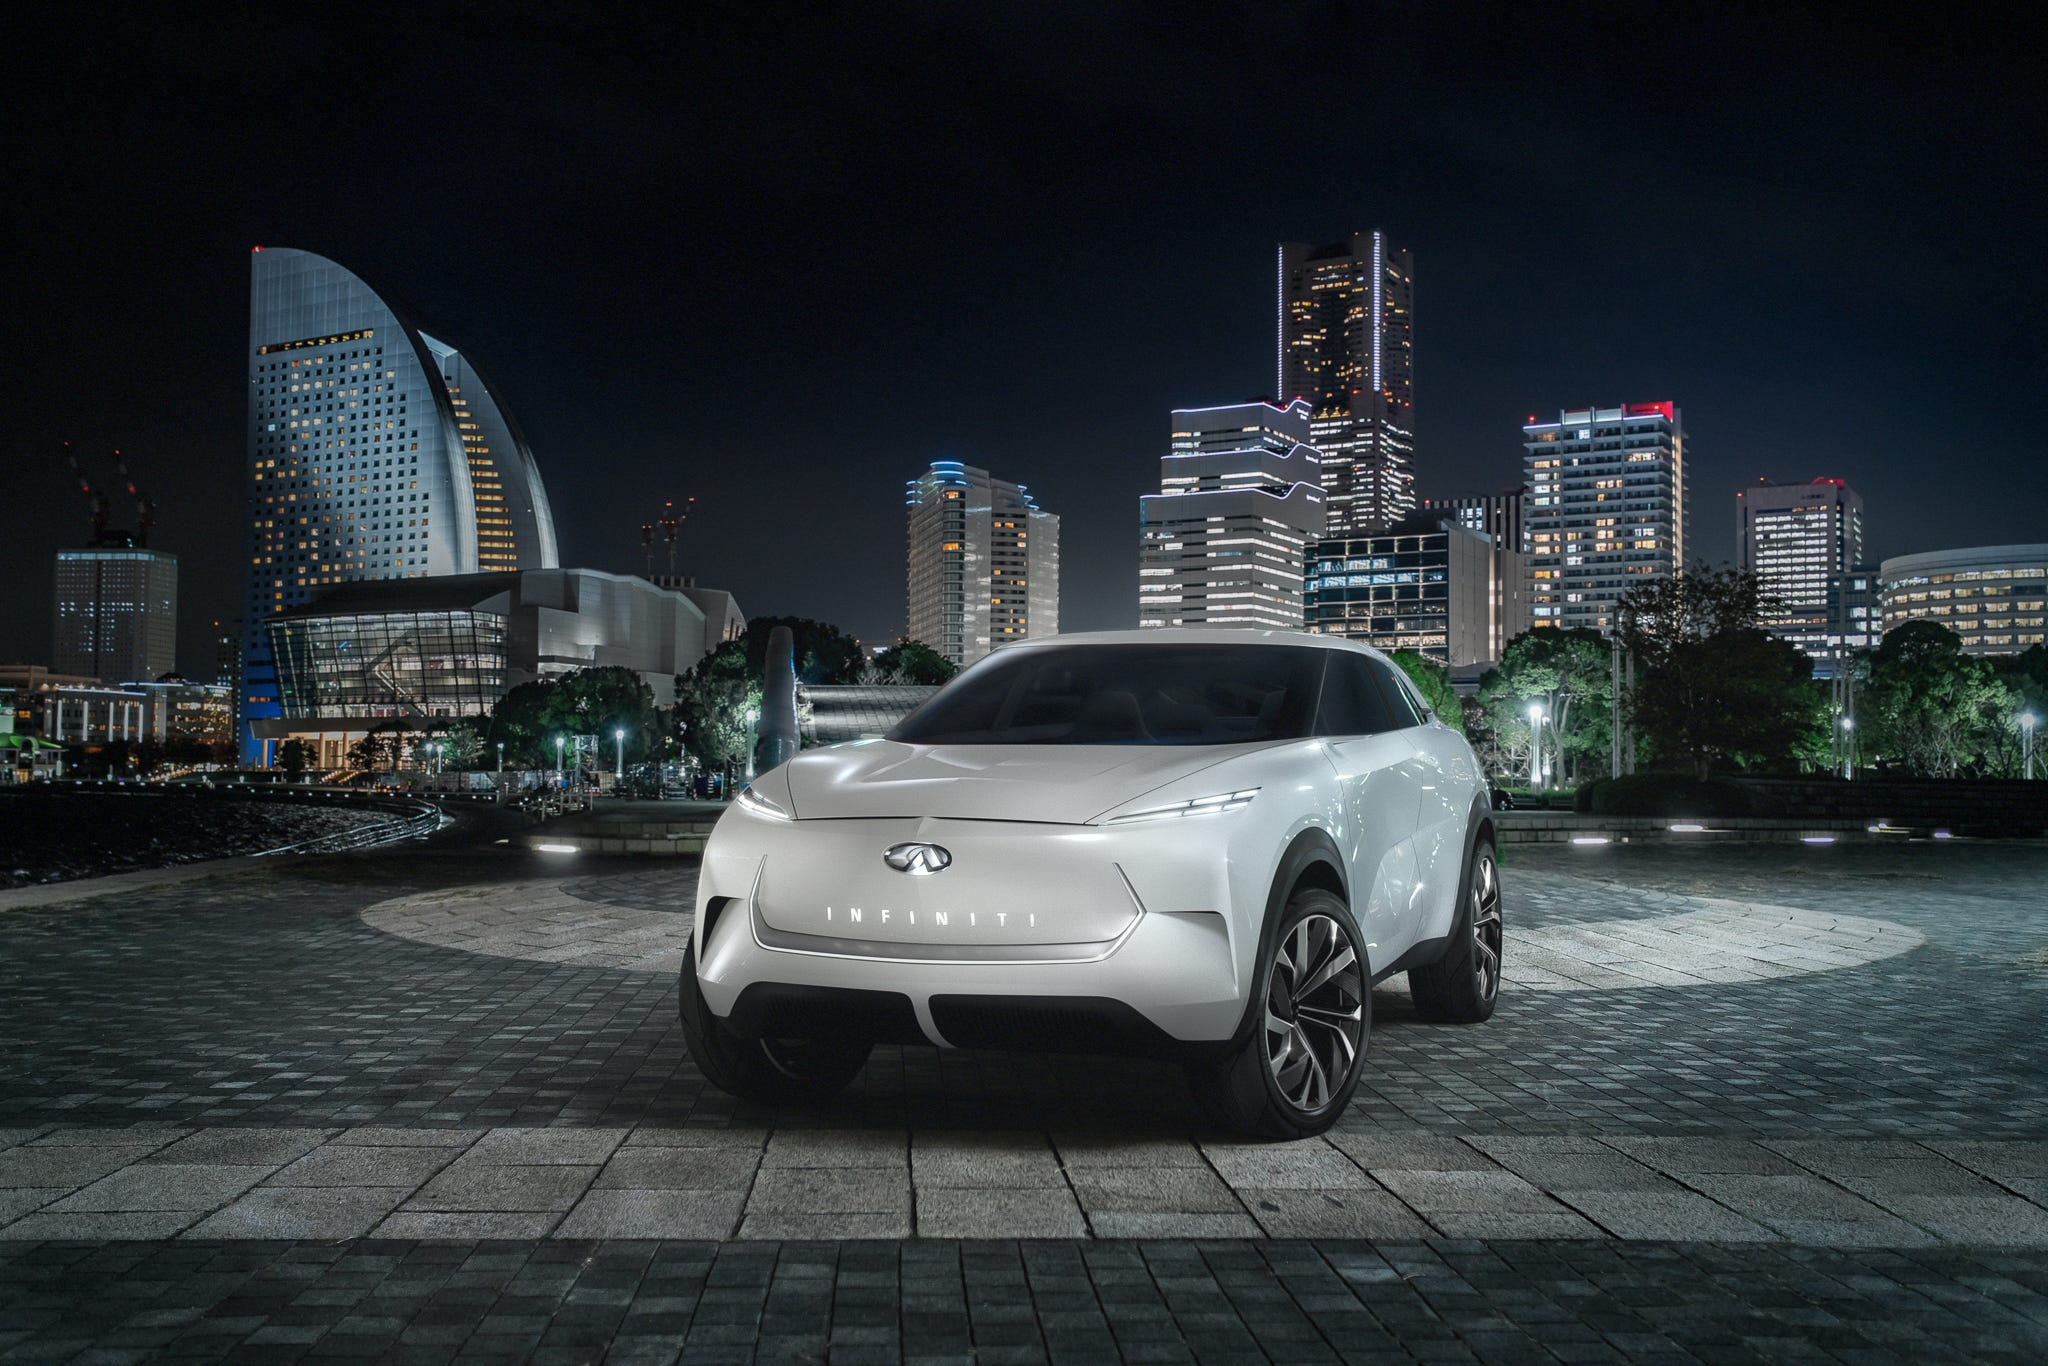 Detroit Auto Show Infiniti Previews Electric Future With Suv Concept